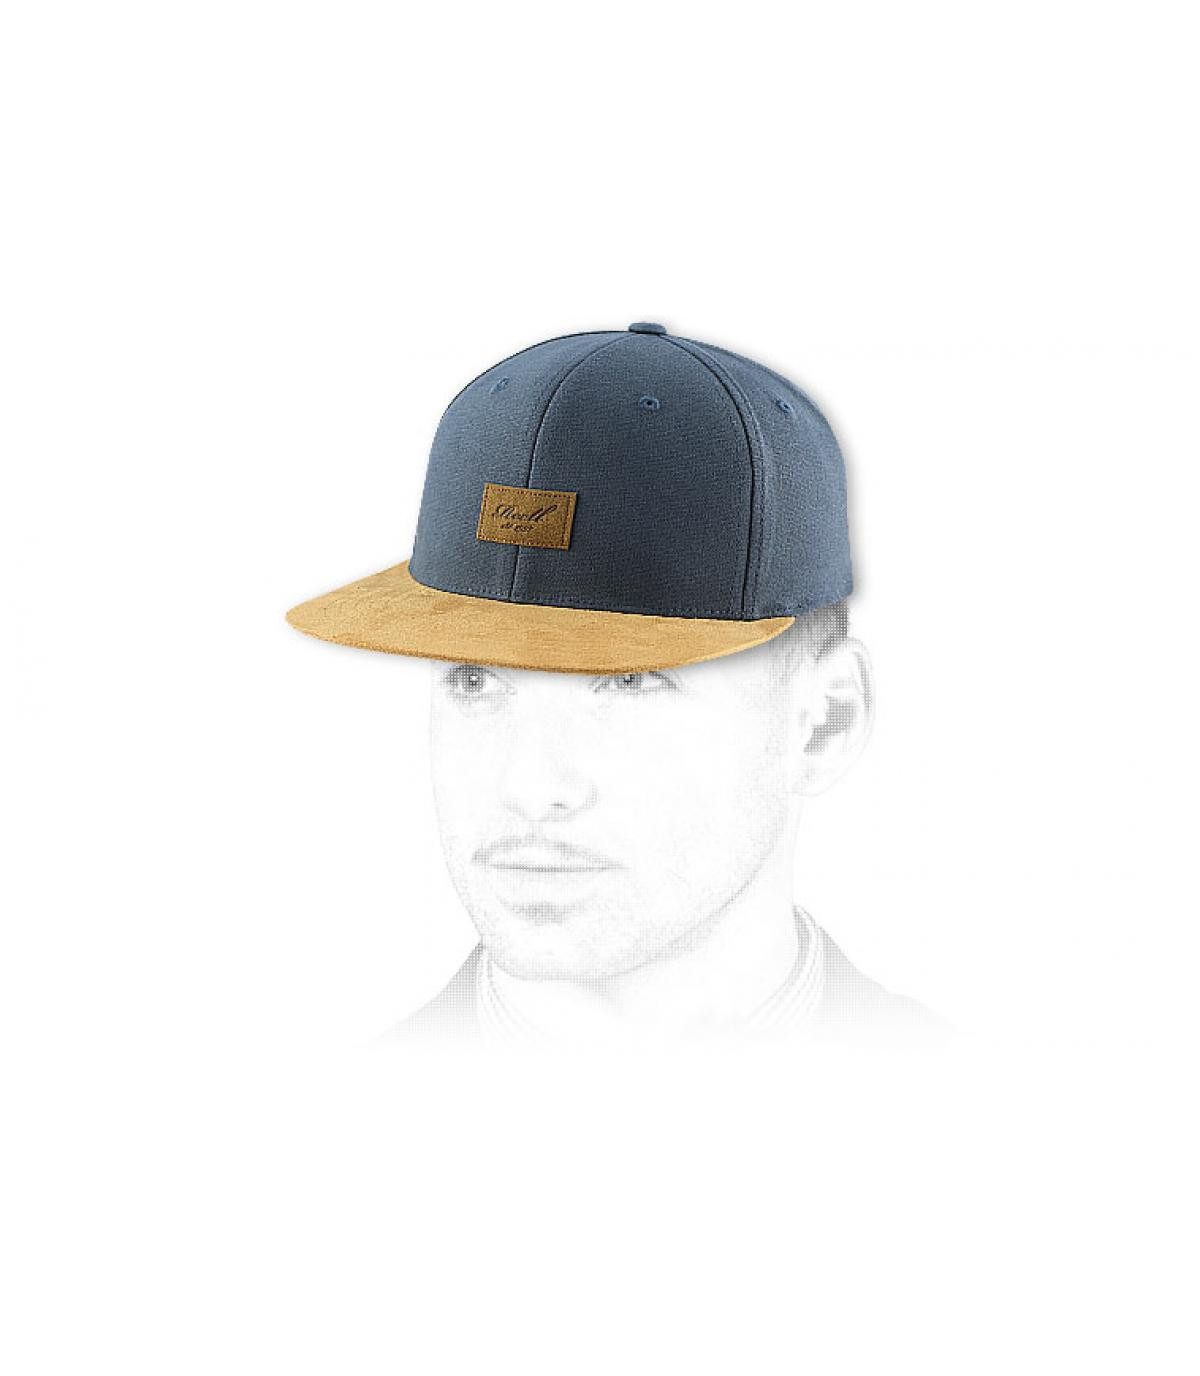 bc9eb0991b7 Snapback dark grey suede - Suede cap charcoal snapback by Reell. Headict